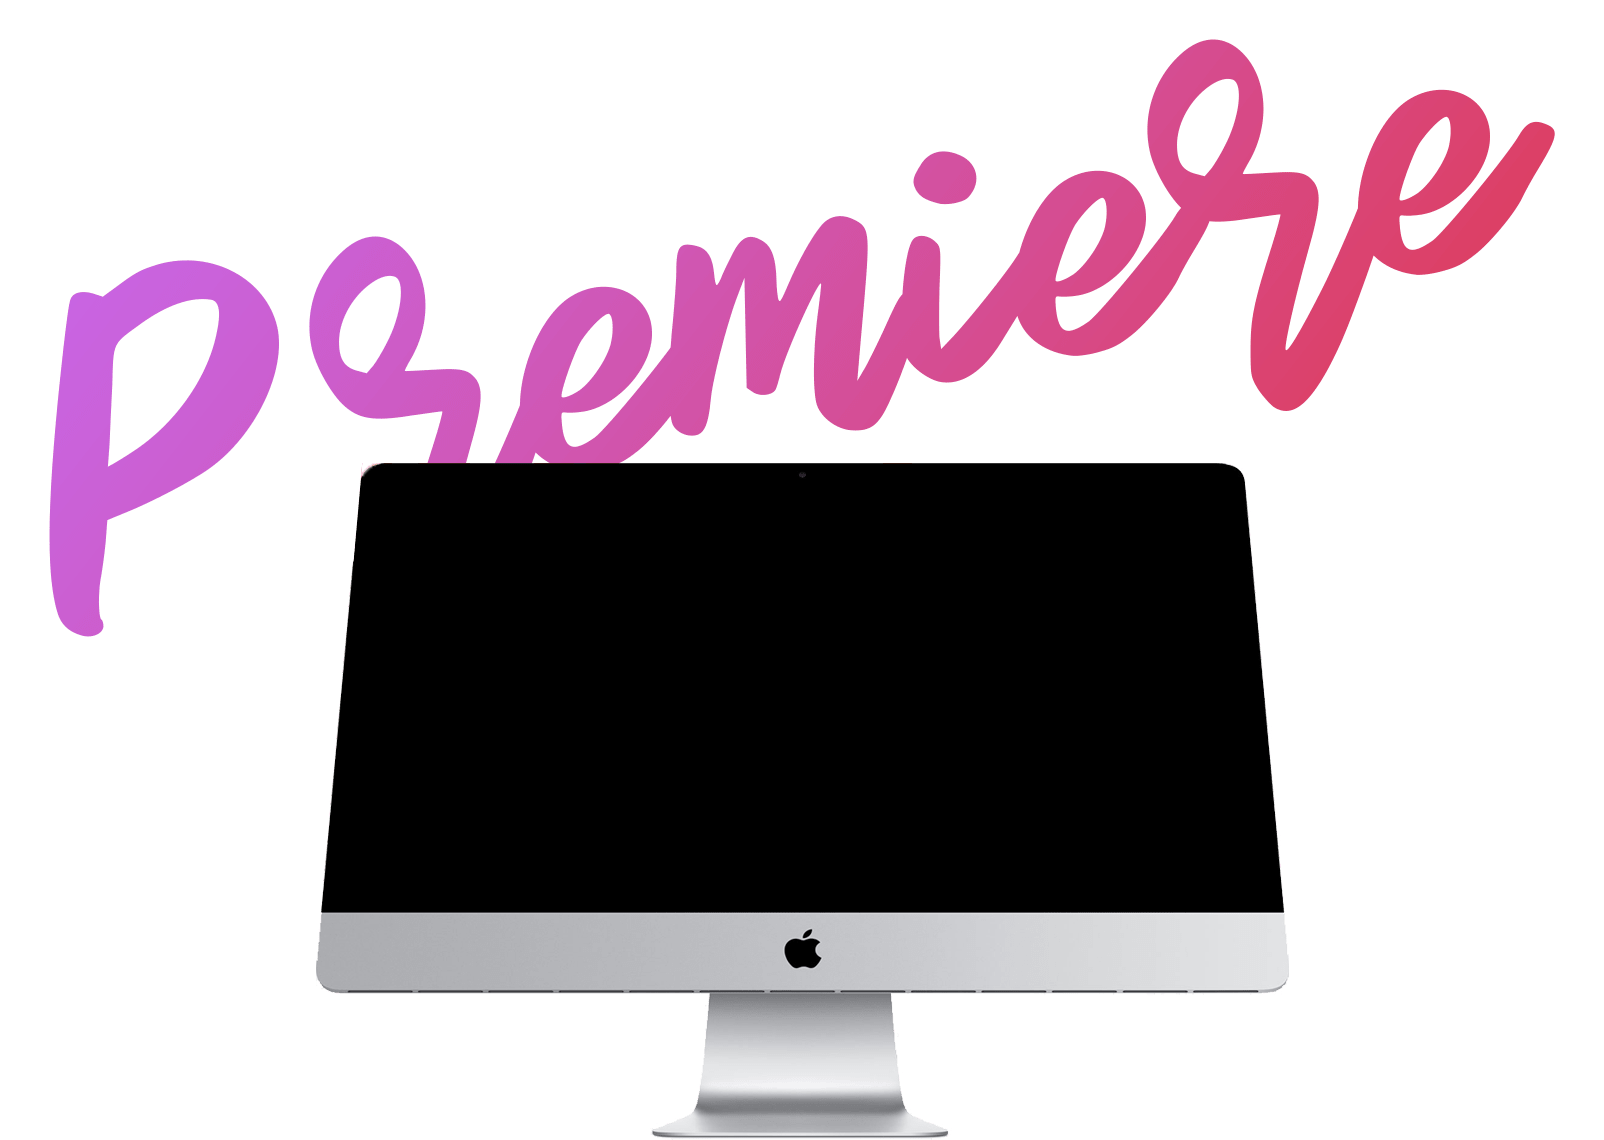 Imac-display image about Premiere 1